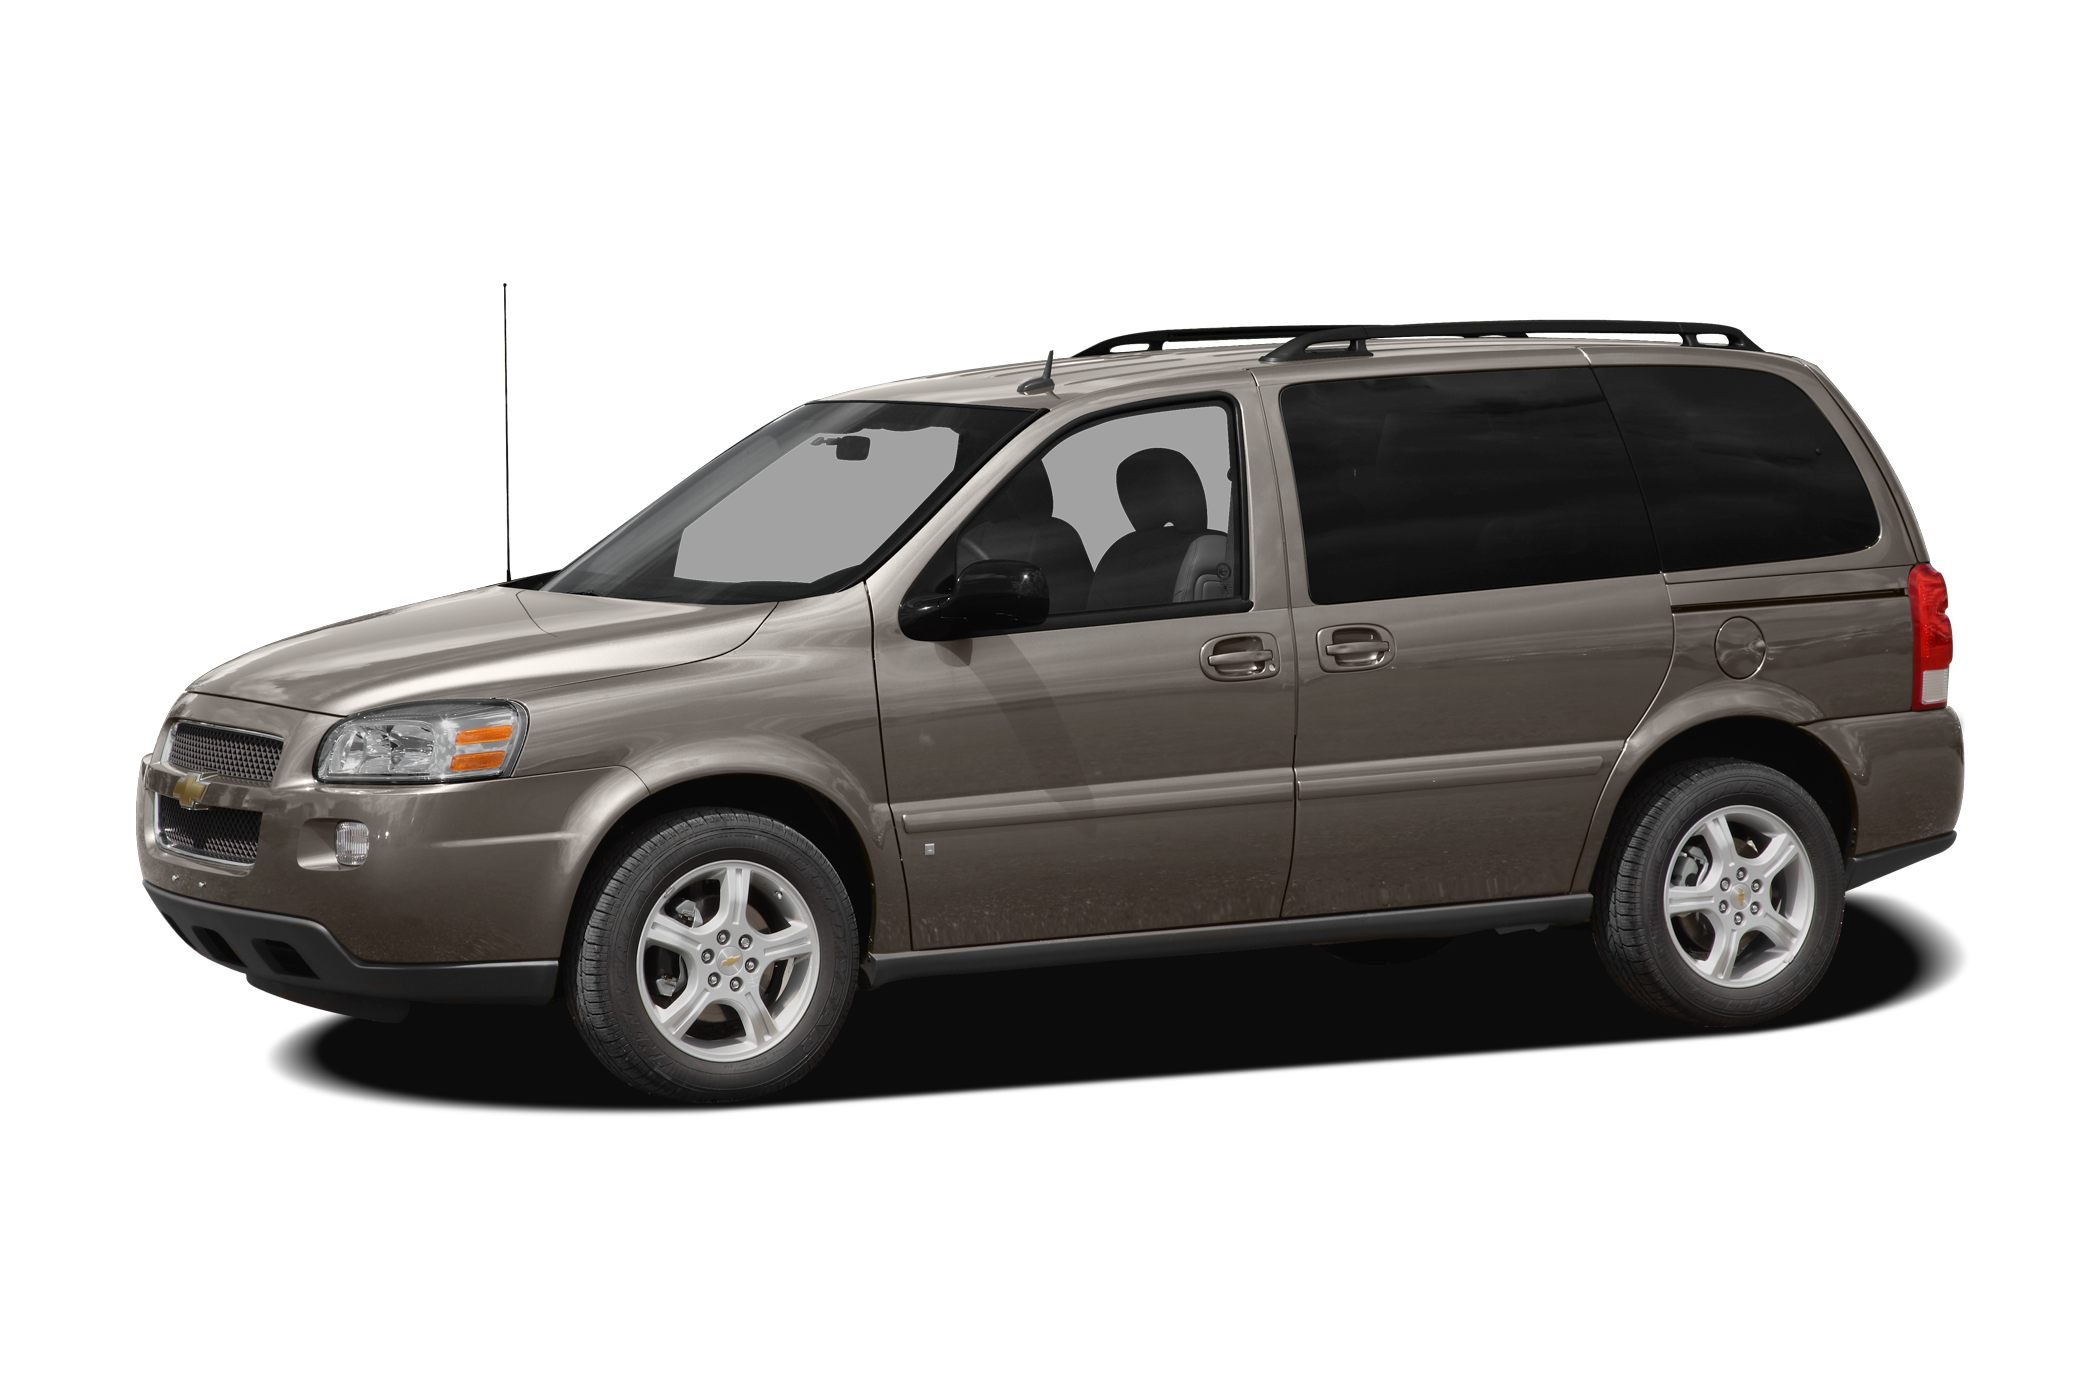 2008 Chevrolet Uplander LS Minivan for sale in Athens for $7,987 with 94,343 miles.